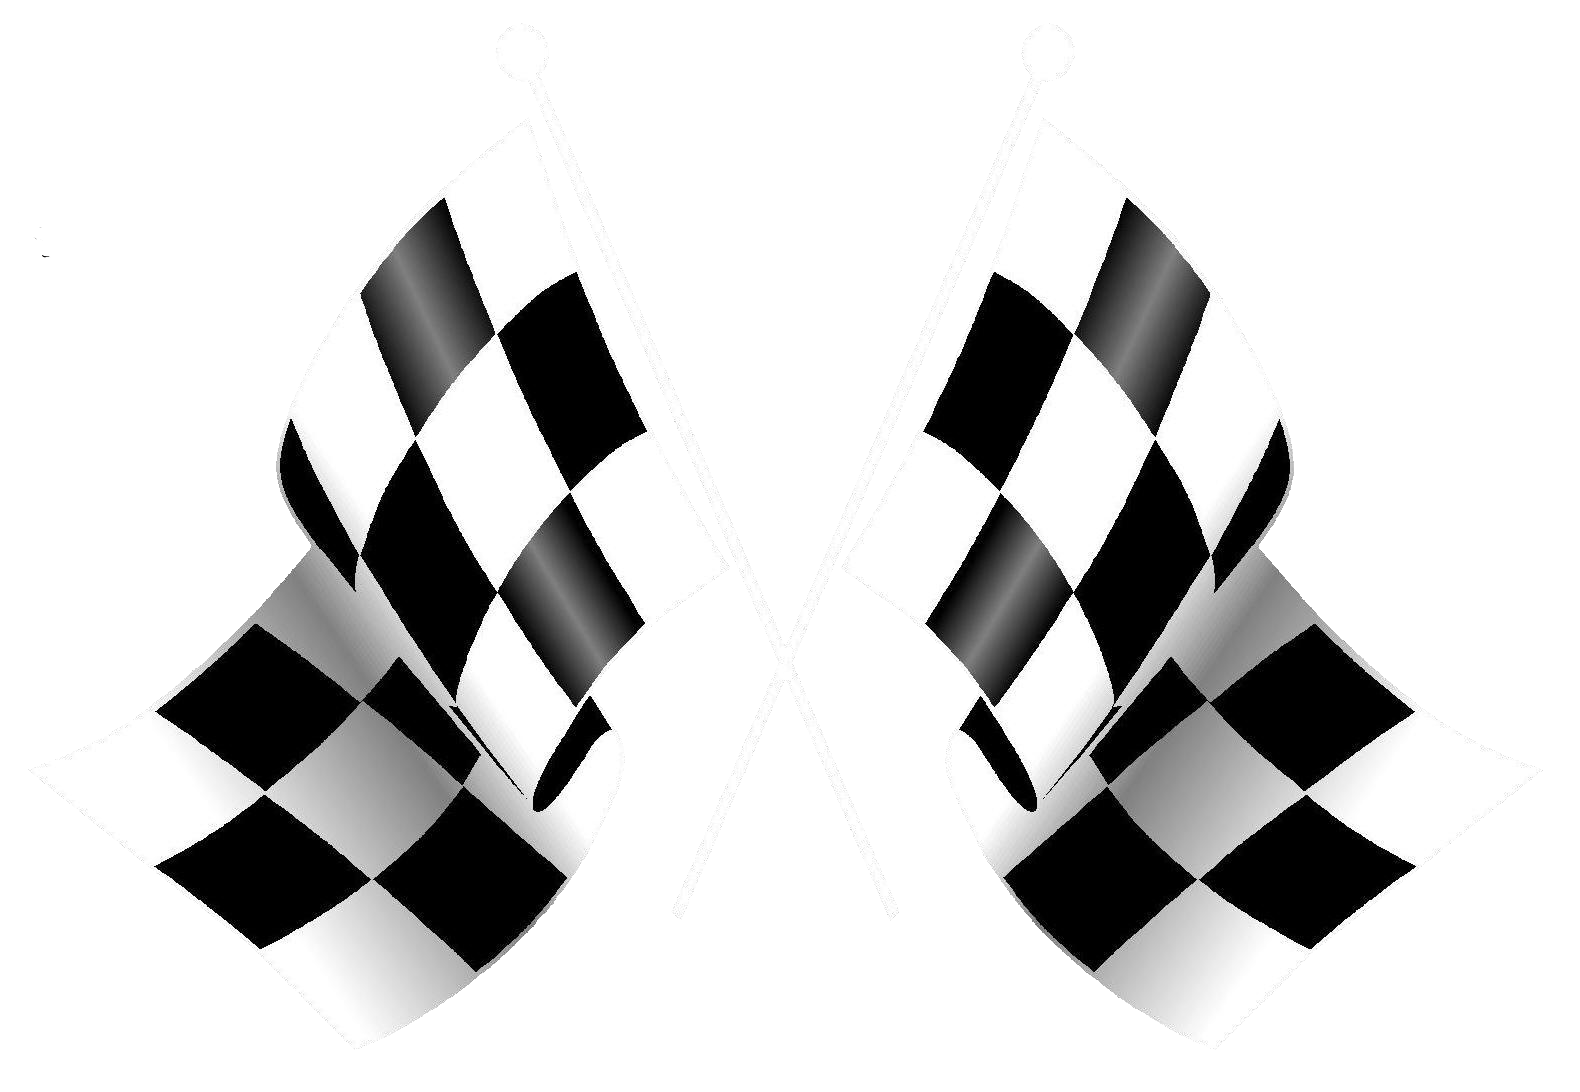 jpg transparent download Racing flag png transparent. Flags vector high resolution